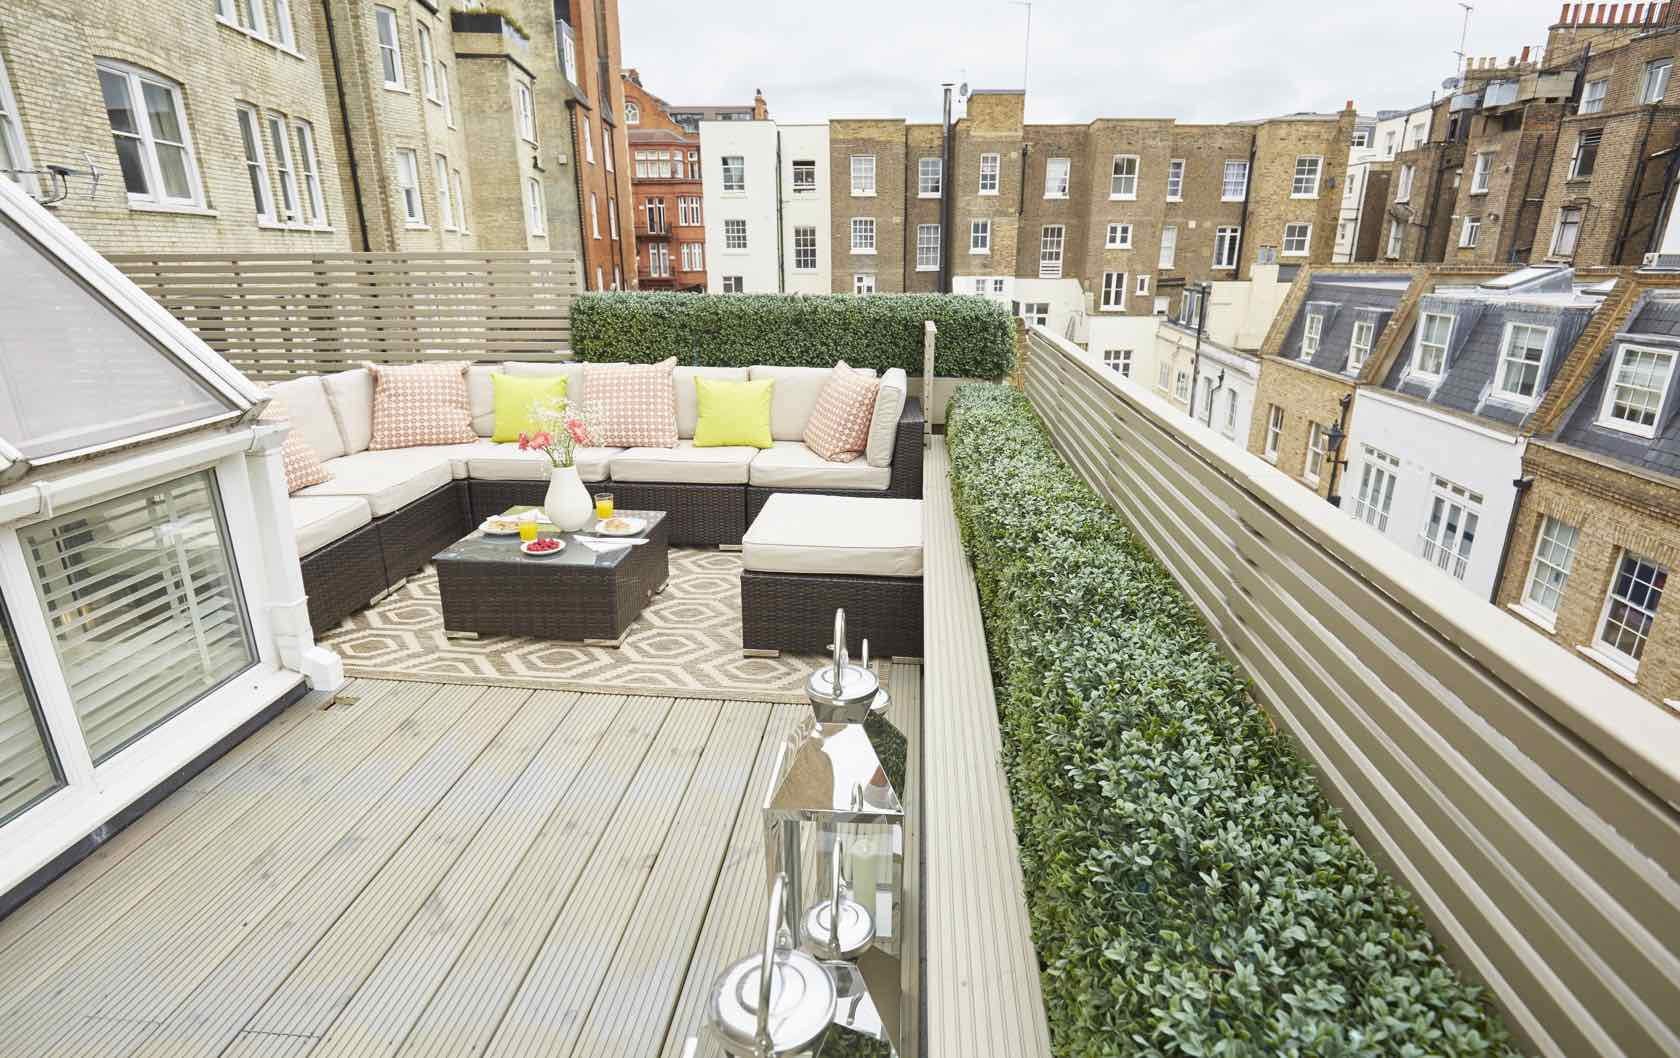 Danebury Apartment Rooftop Notting Hill